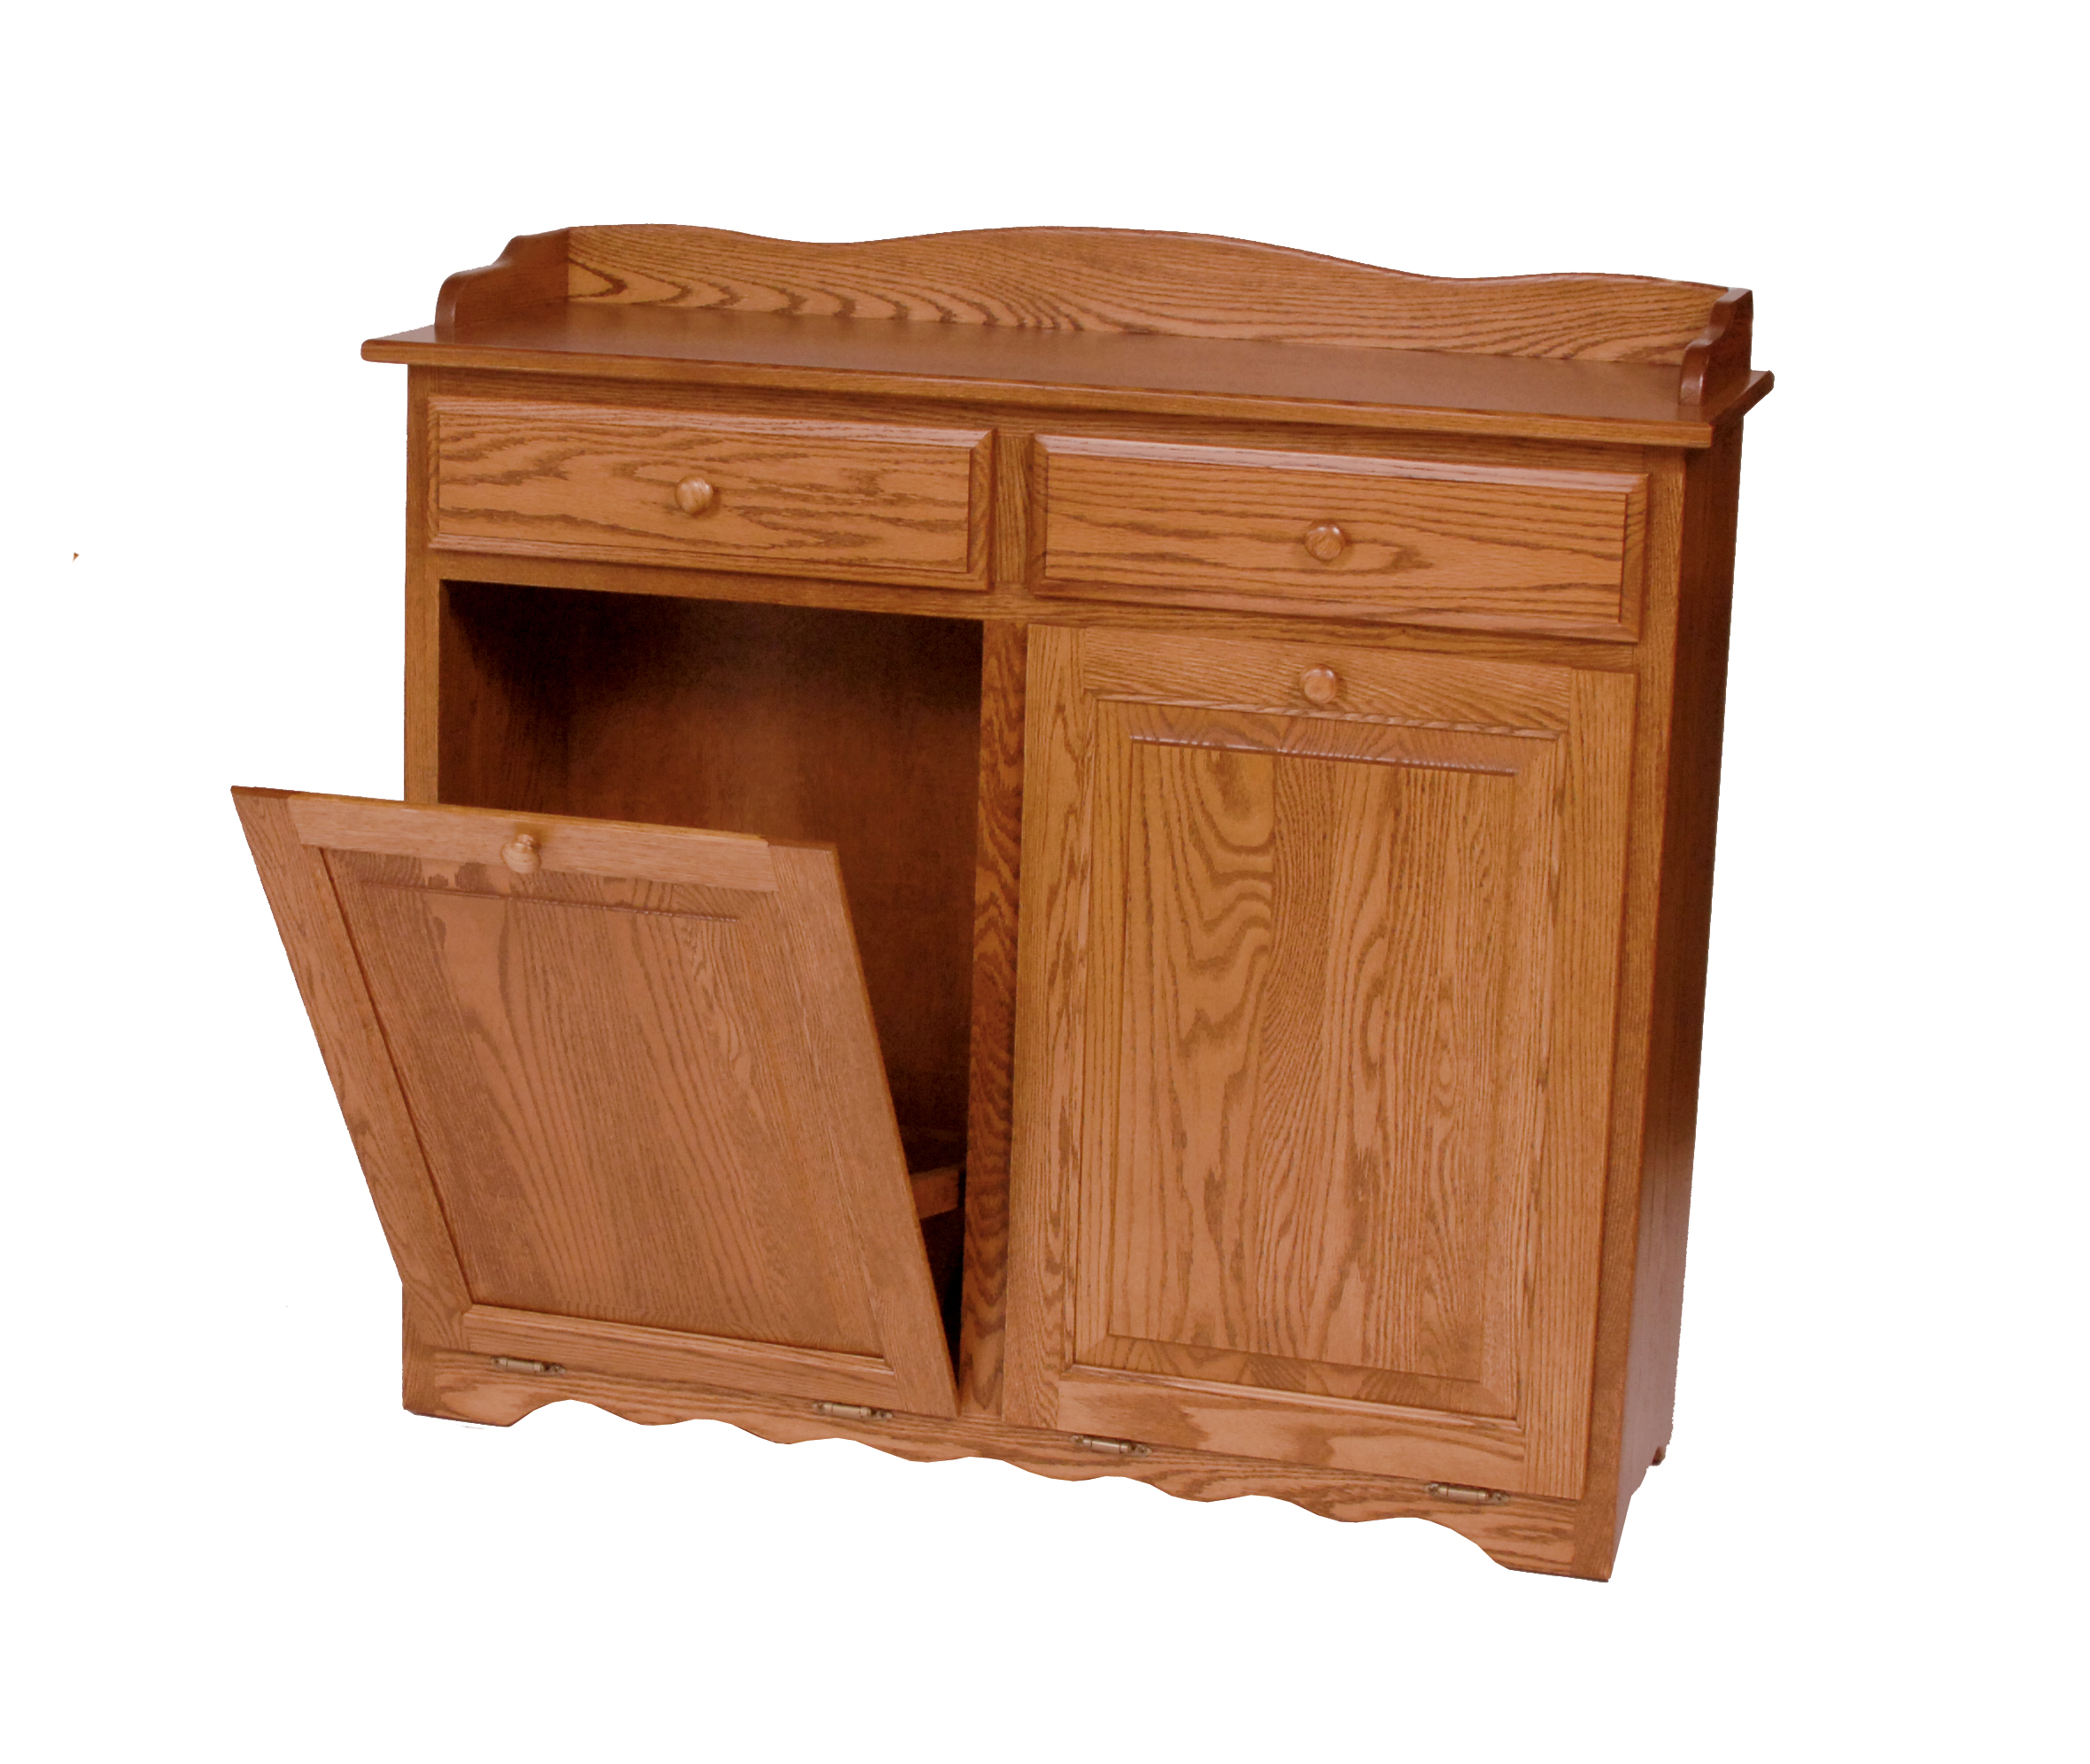 Amish Wood Kitchen Trash Bin Garbage Can Bins